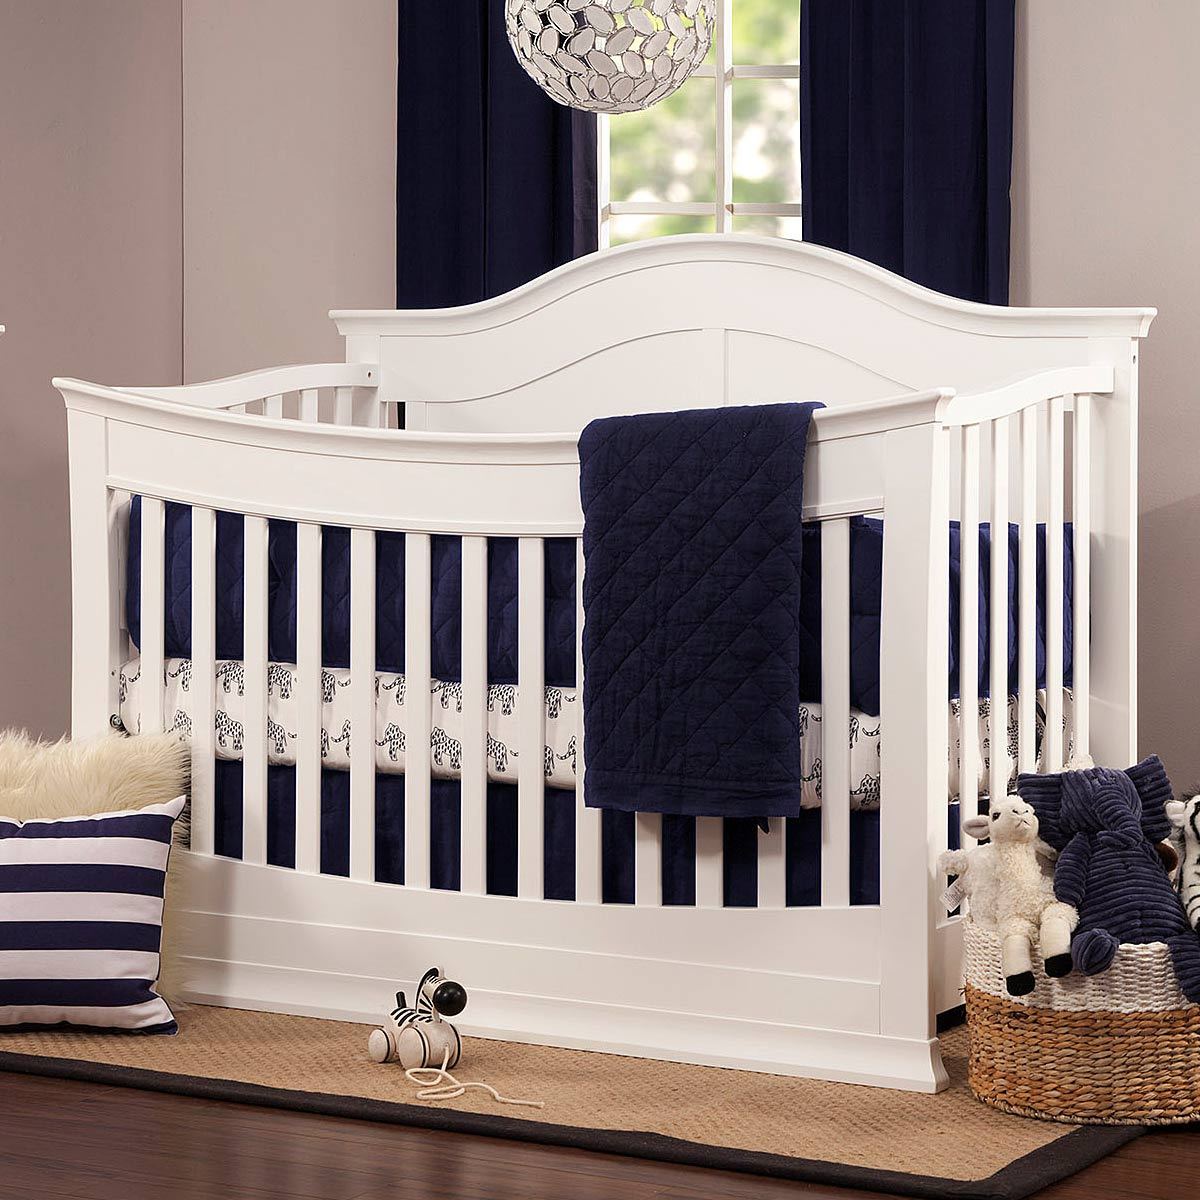 davinci meadow 4in1 convertible crib with toddler bed conversion kit in white free shipping